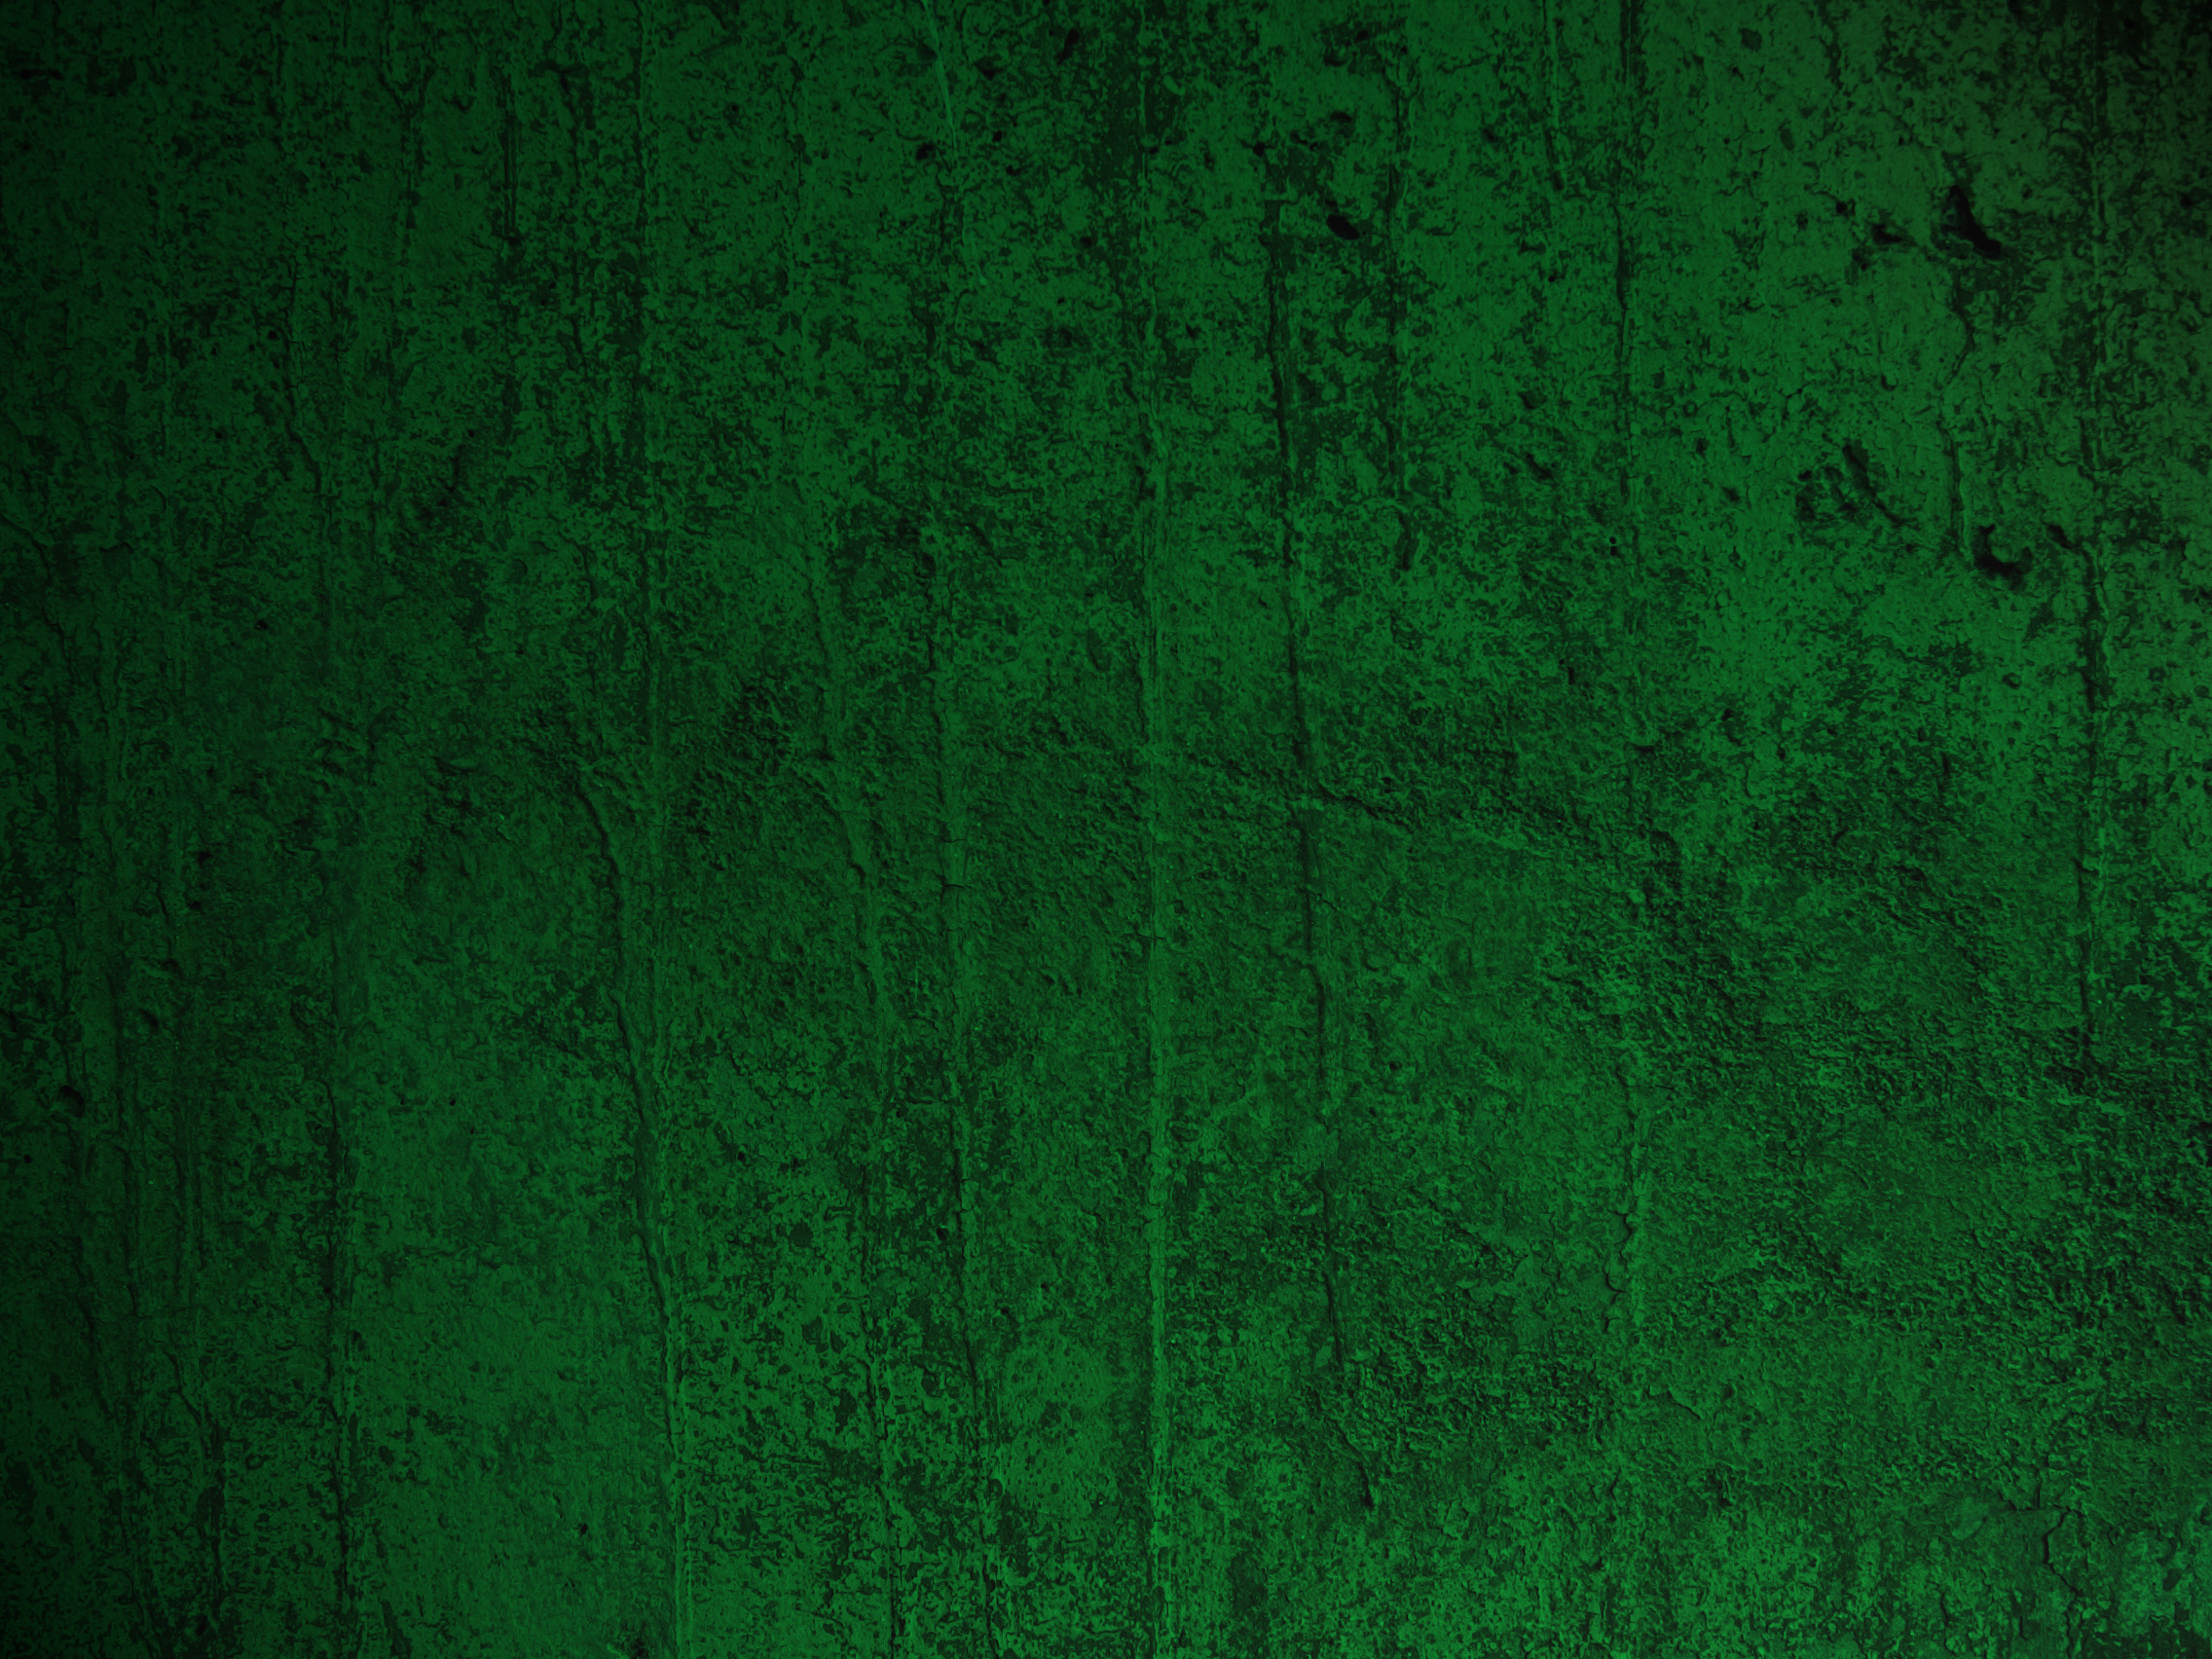 Green Background Design Wallpaper Green Backgroun...